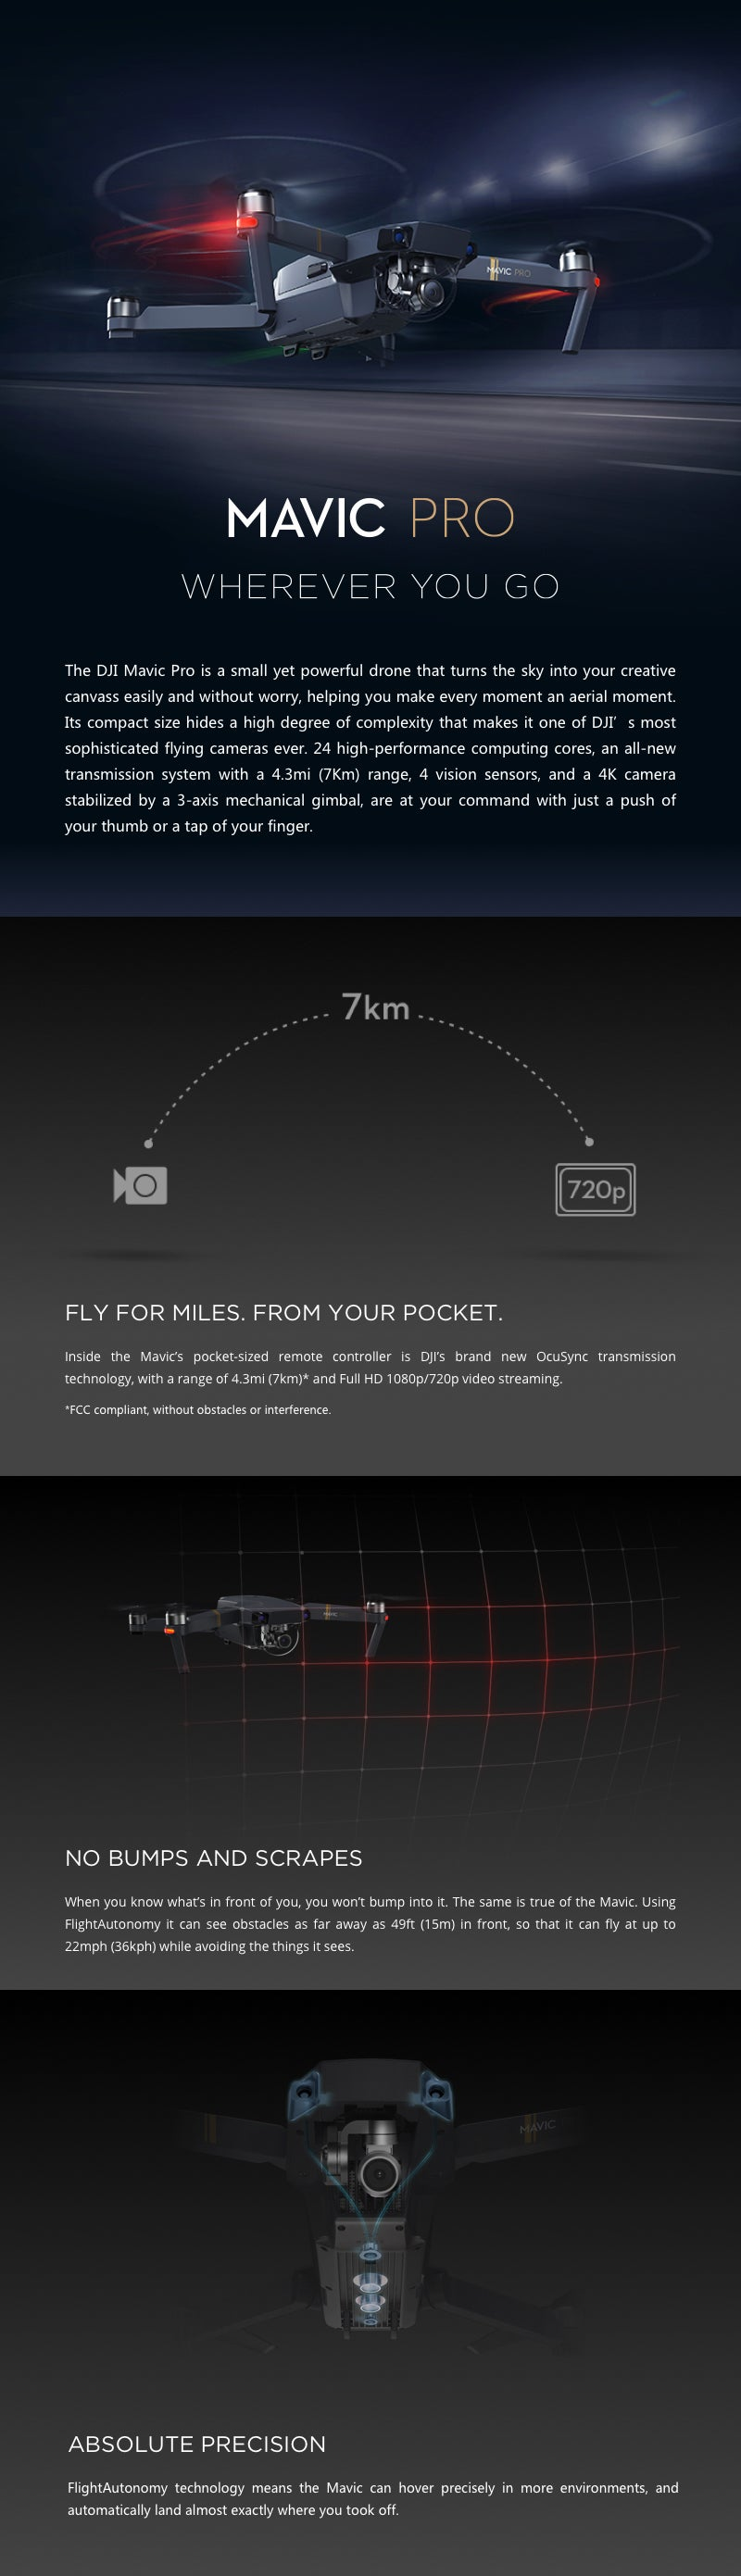 DJI Mavic Pro Description 1